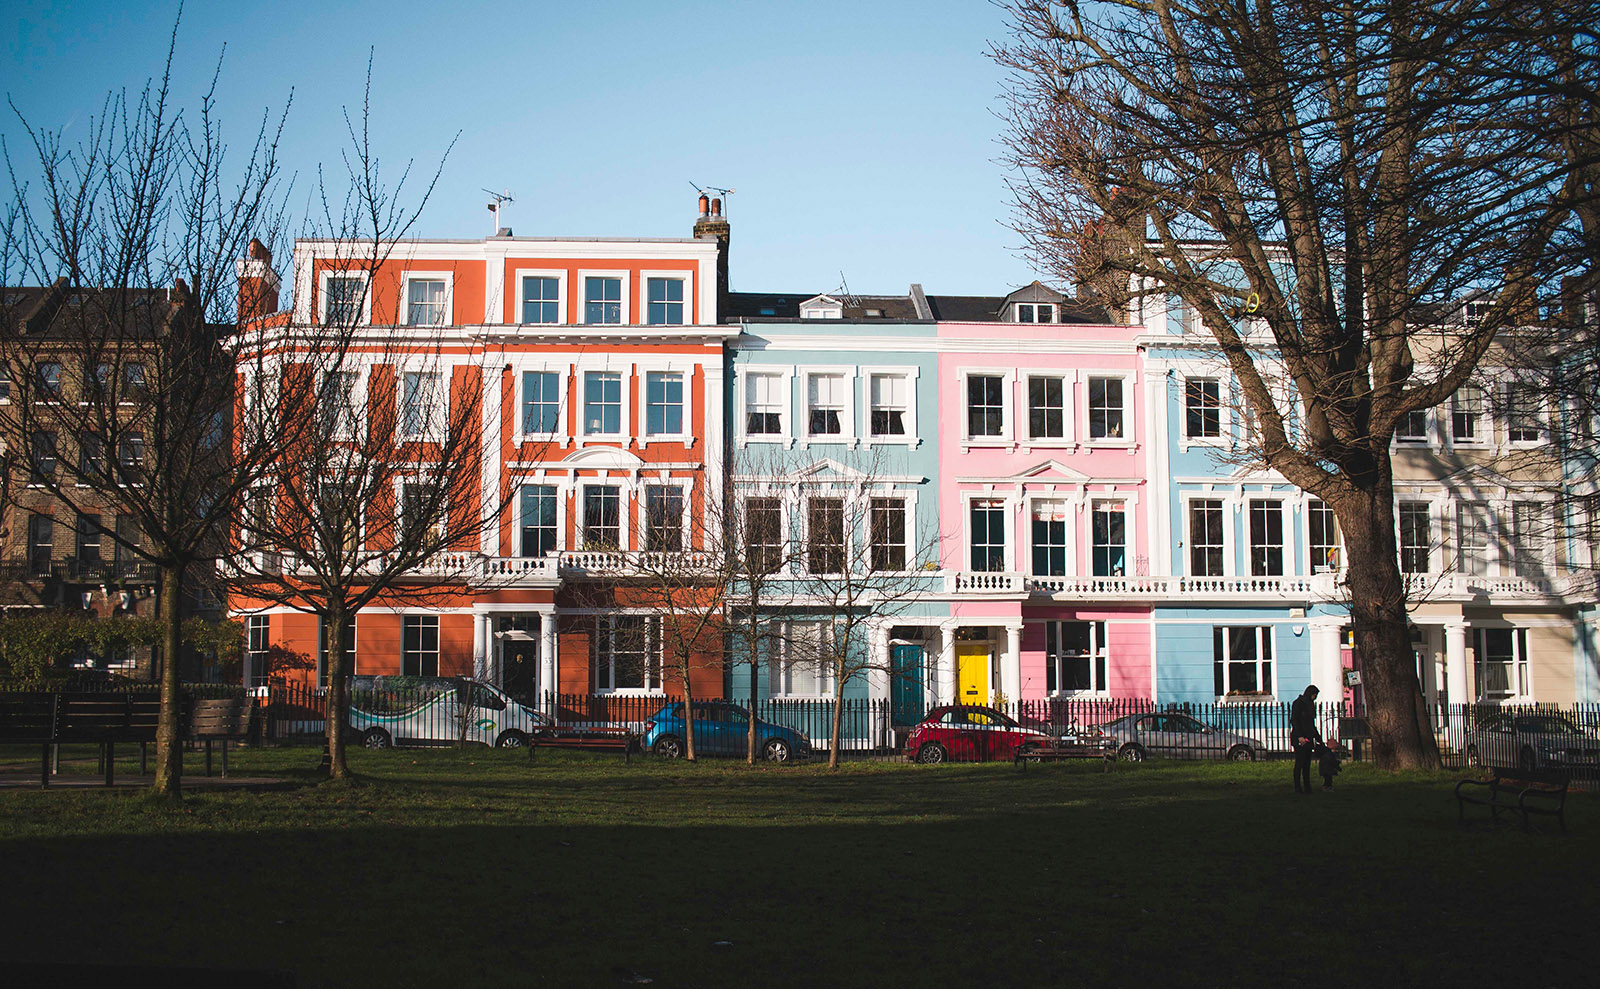 pastel-colored houses in the primrose hill neighborhood of london